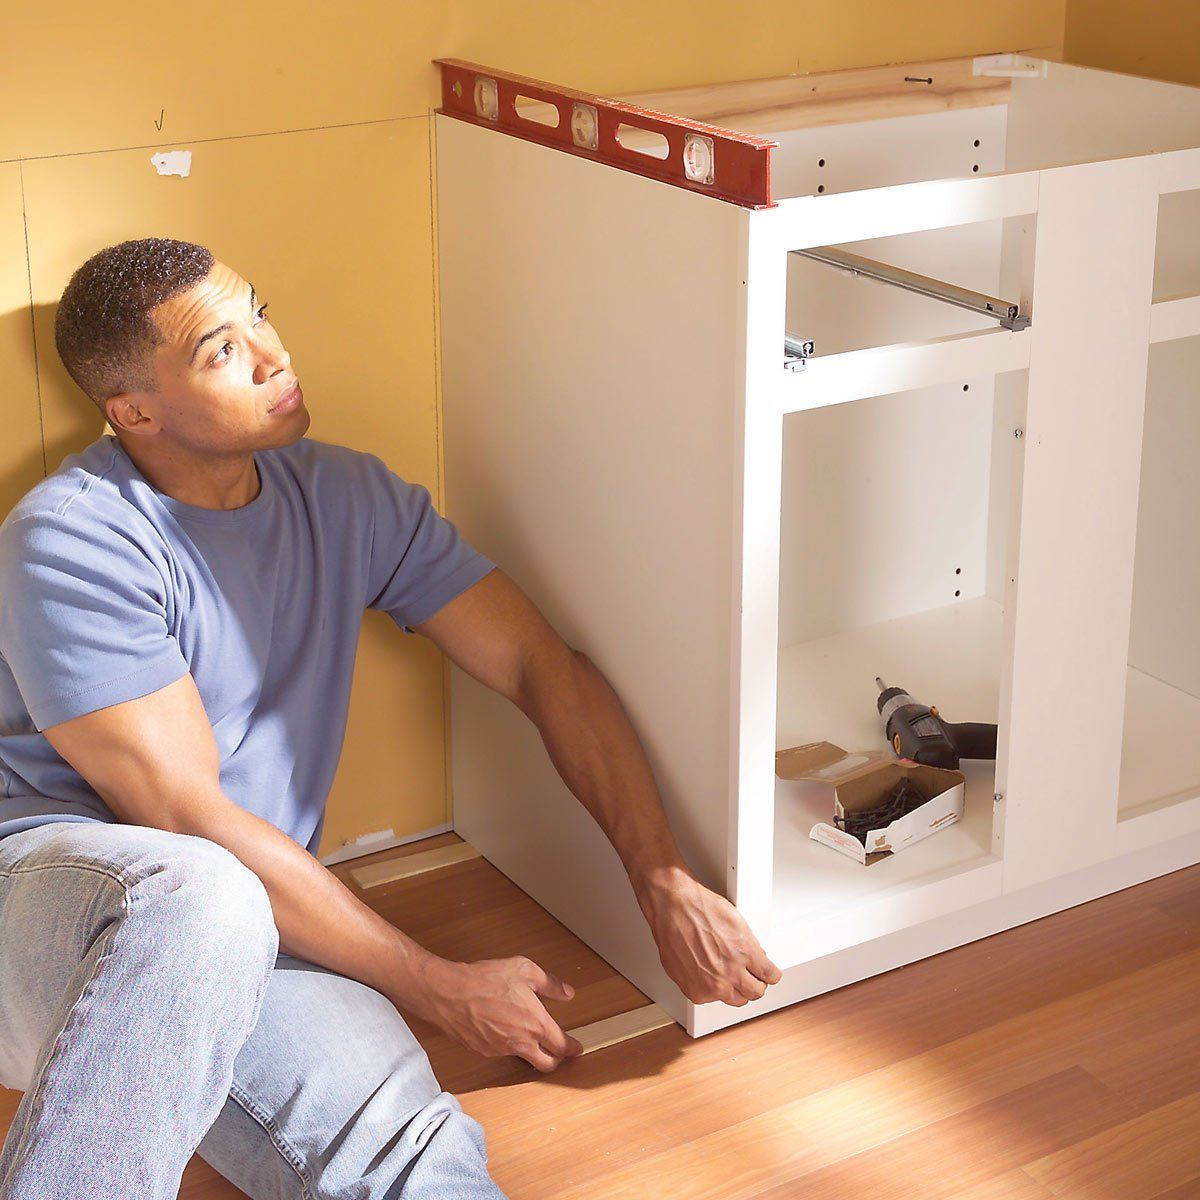 How To Install Cabinets Like A Pro For The Home Installing